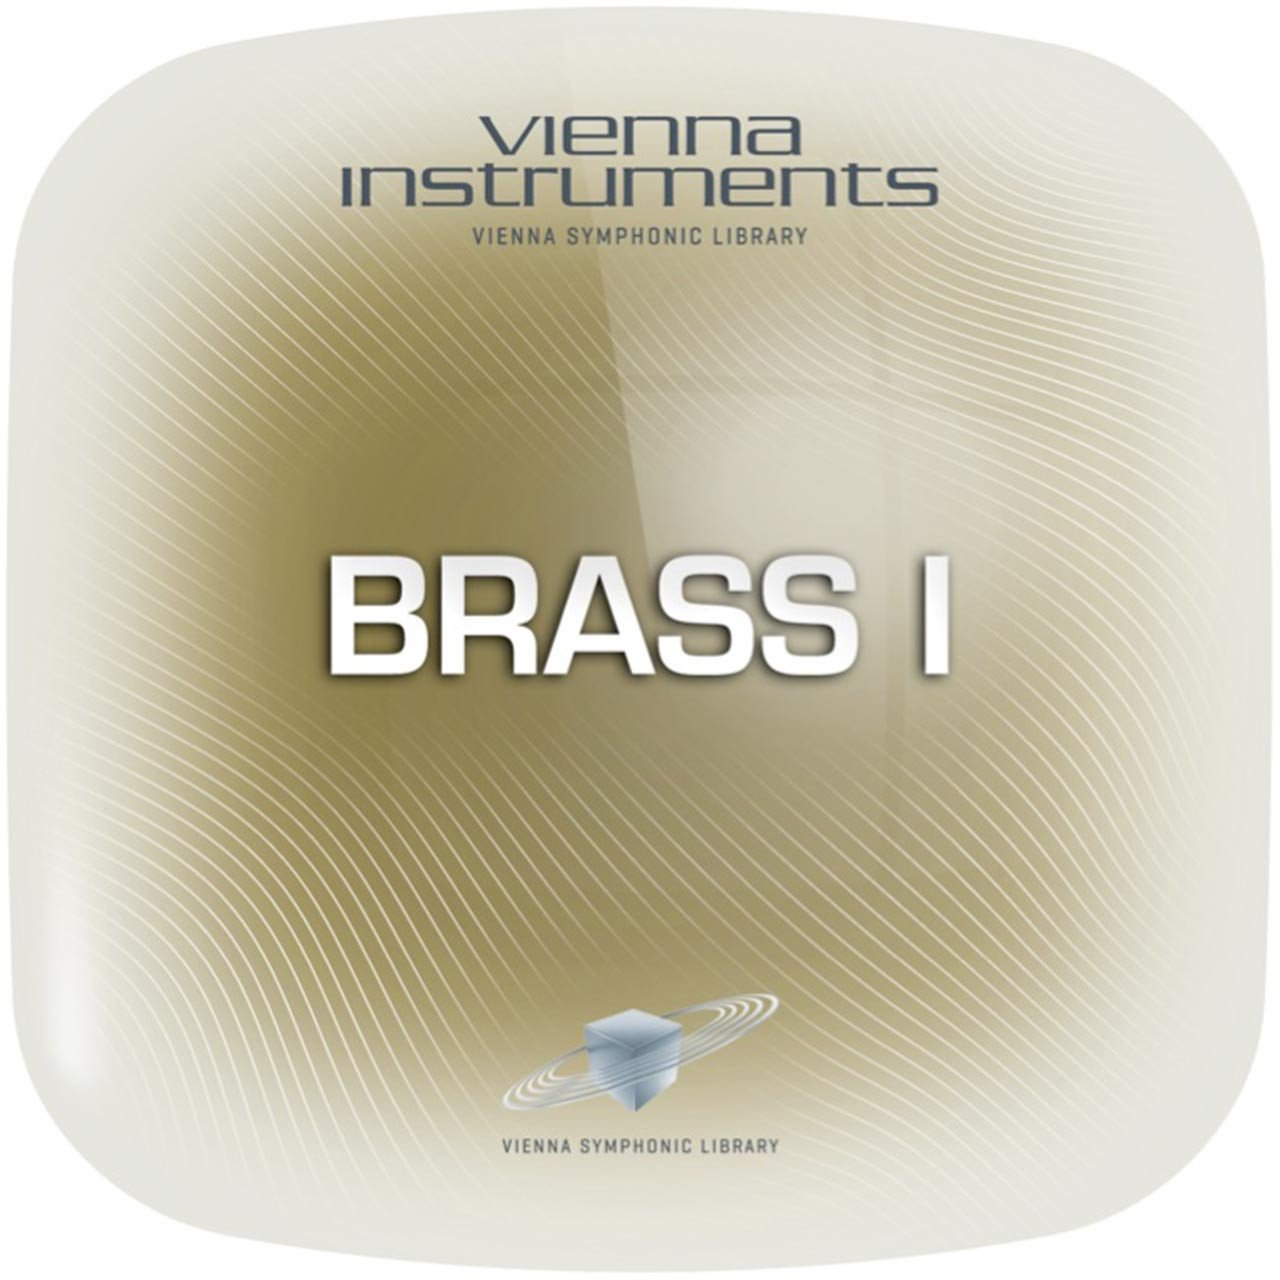 Software Instruments - Vienna Symphonic Library VSL - BRASS I